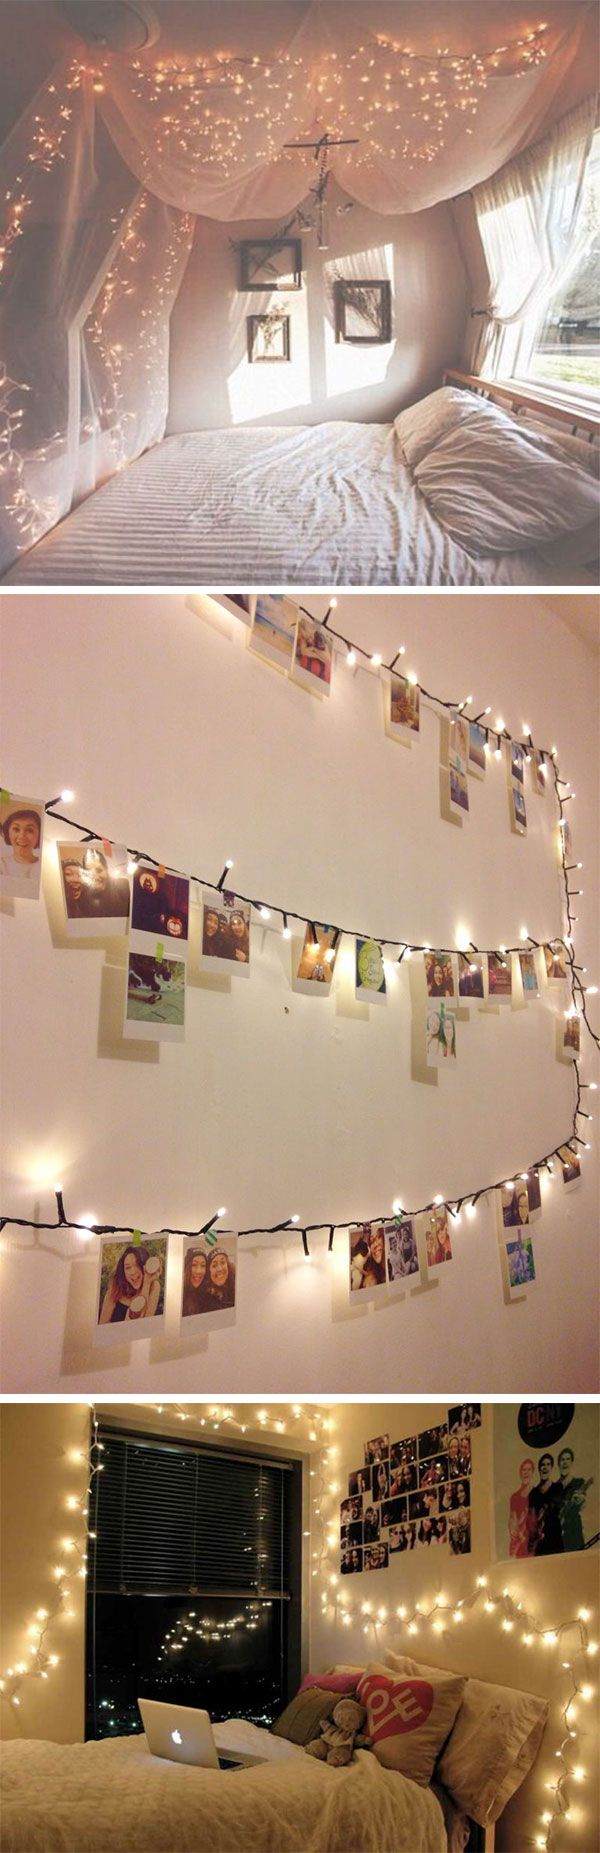 https://i.pinimg.com/736x/17/19/3b/17193b4d0fb1285f55d10f2f450682fa--room-decor-diy-lights-diy-home-decor-for-teens-tumblr-girls-bedroom.jpg